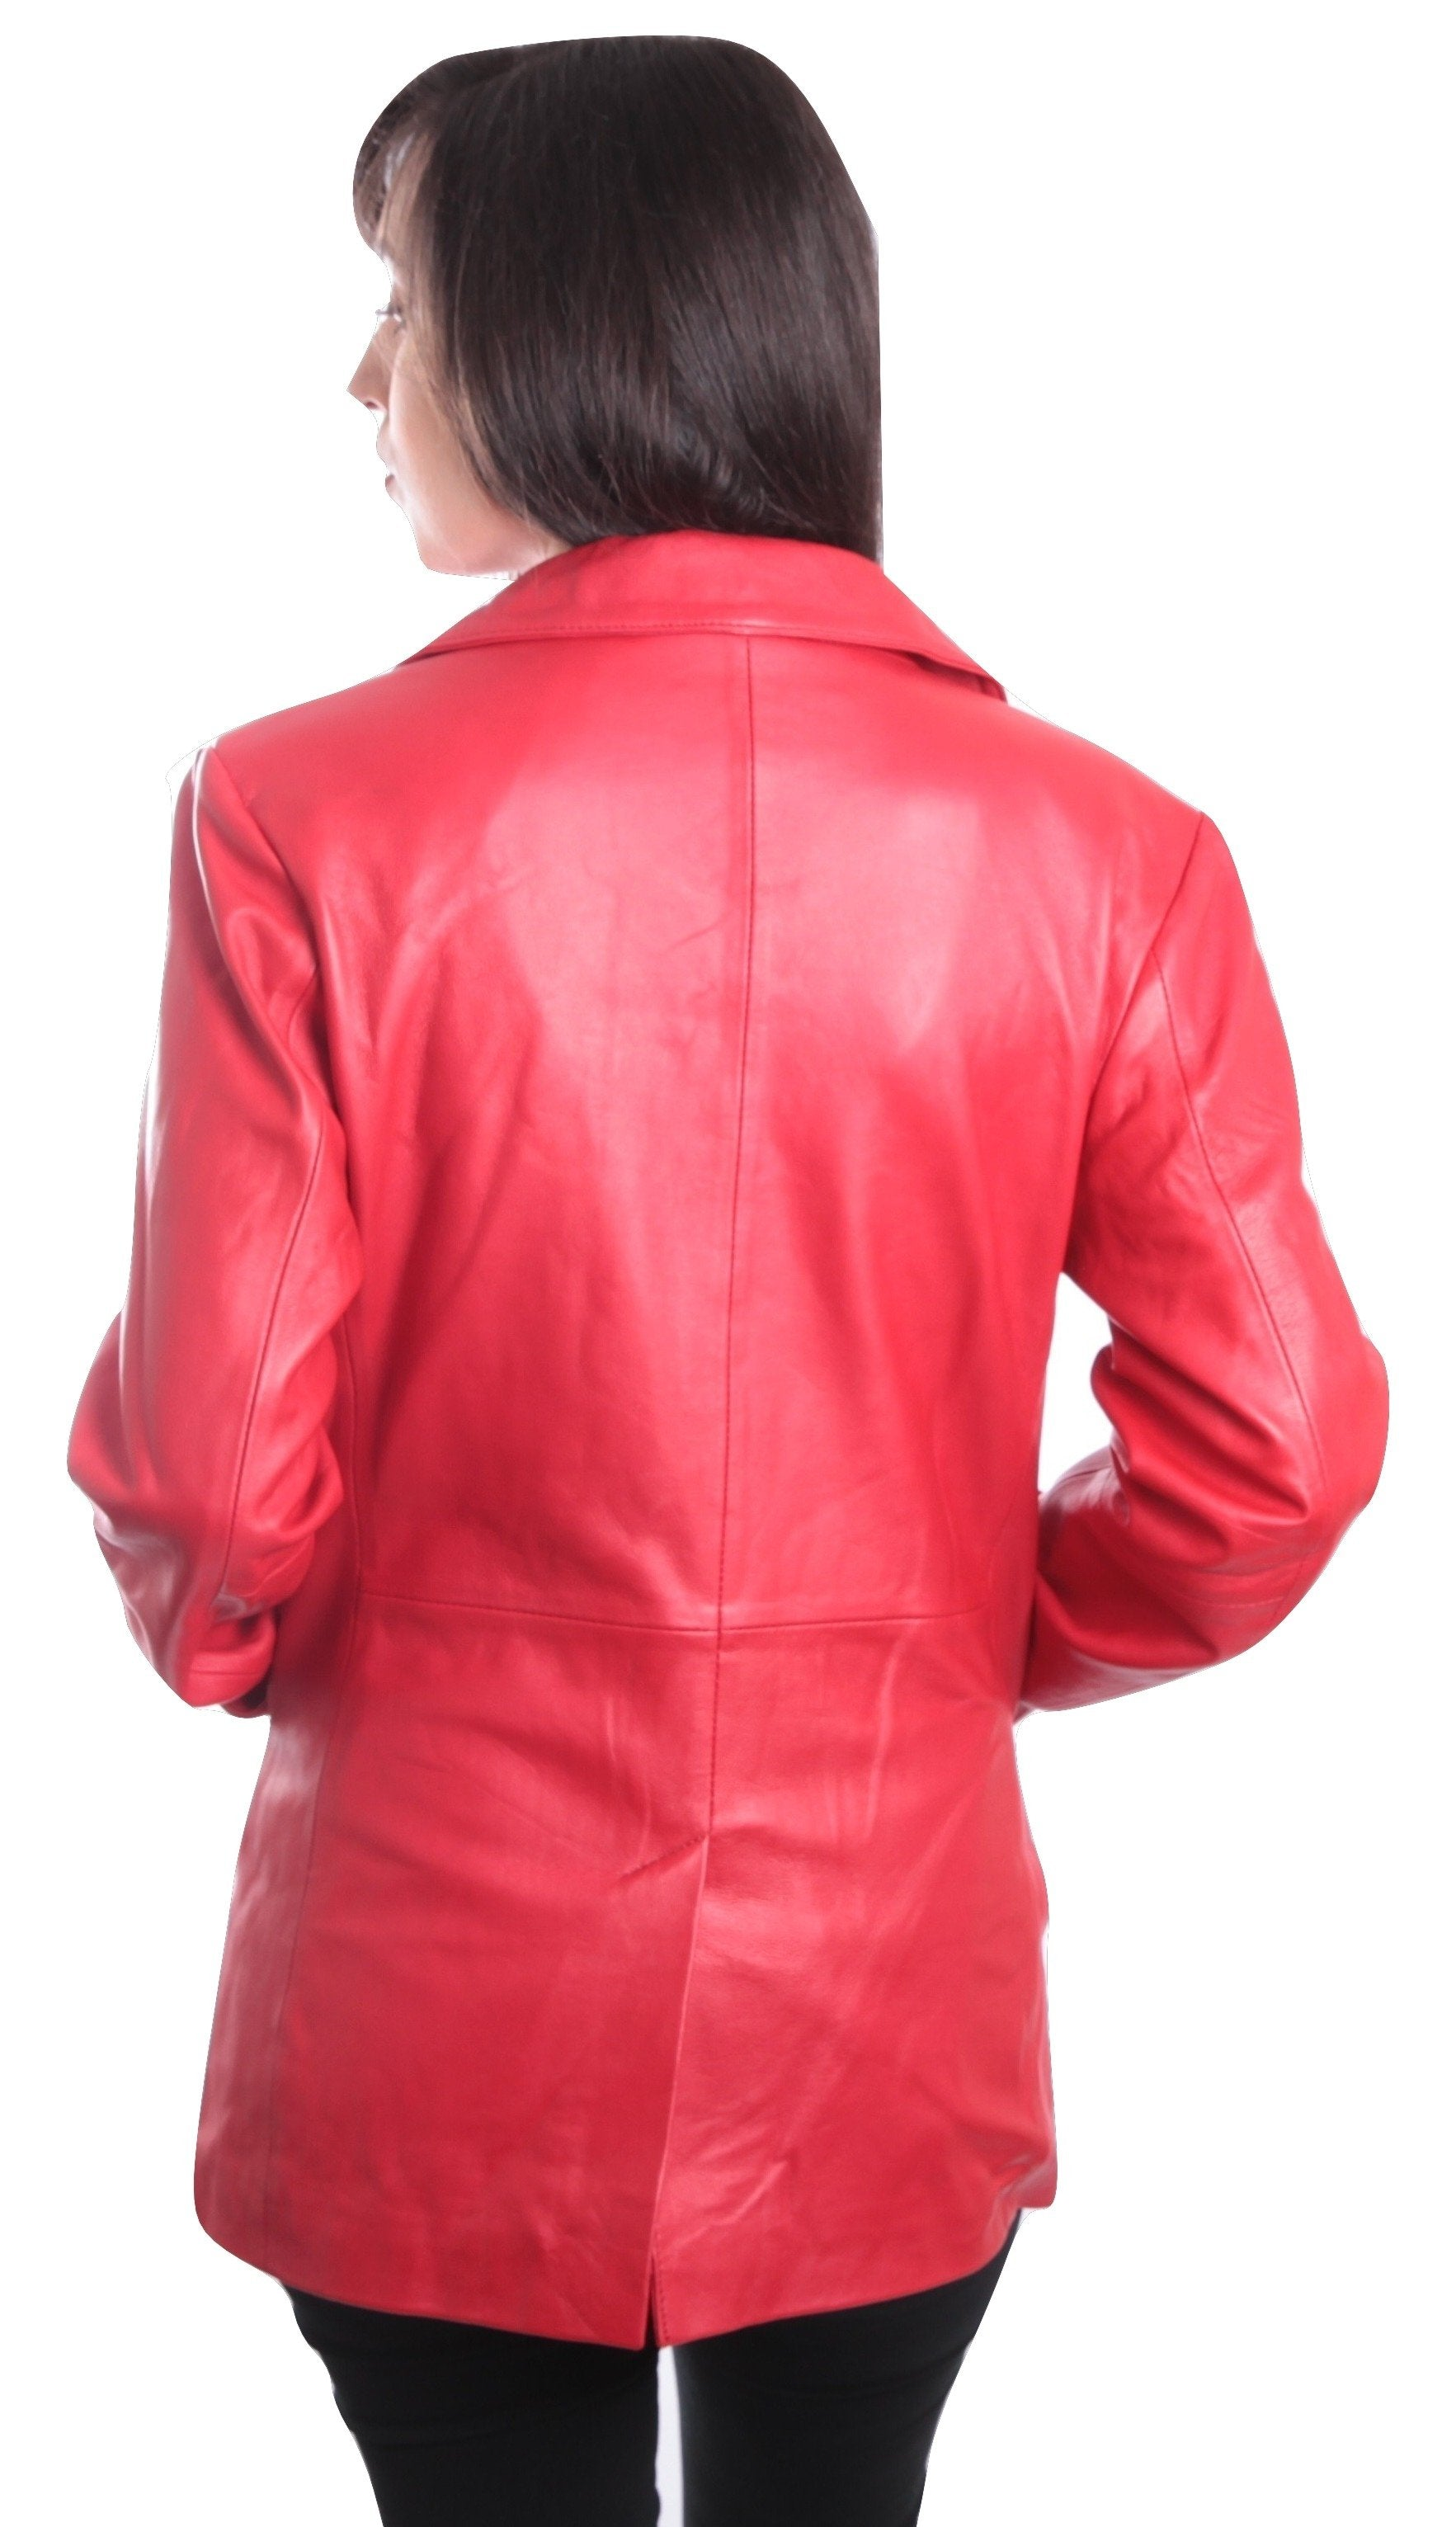 Womens Lipstick Red Hot 3 Button Leather Blazer-Womens Leather Blazer-Fadcloset-XS-Red-FADCLOSET